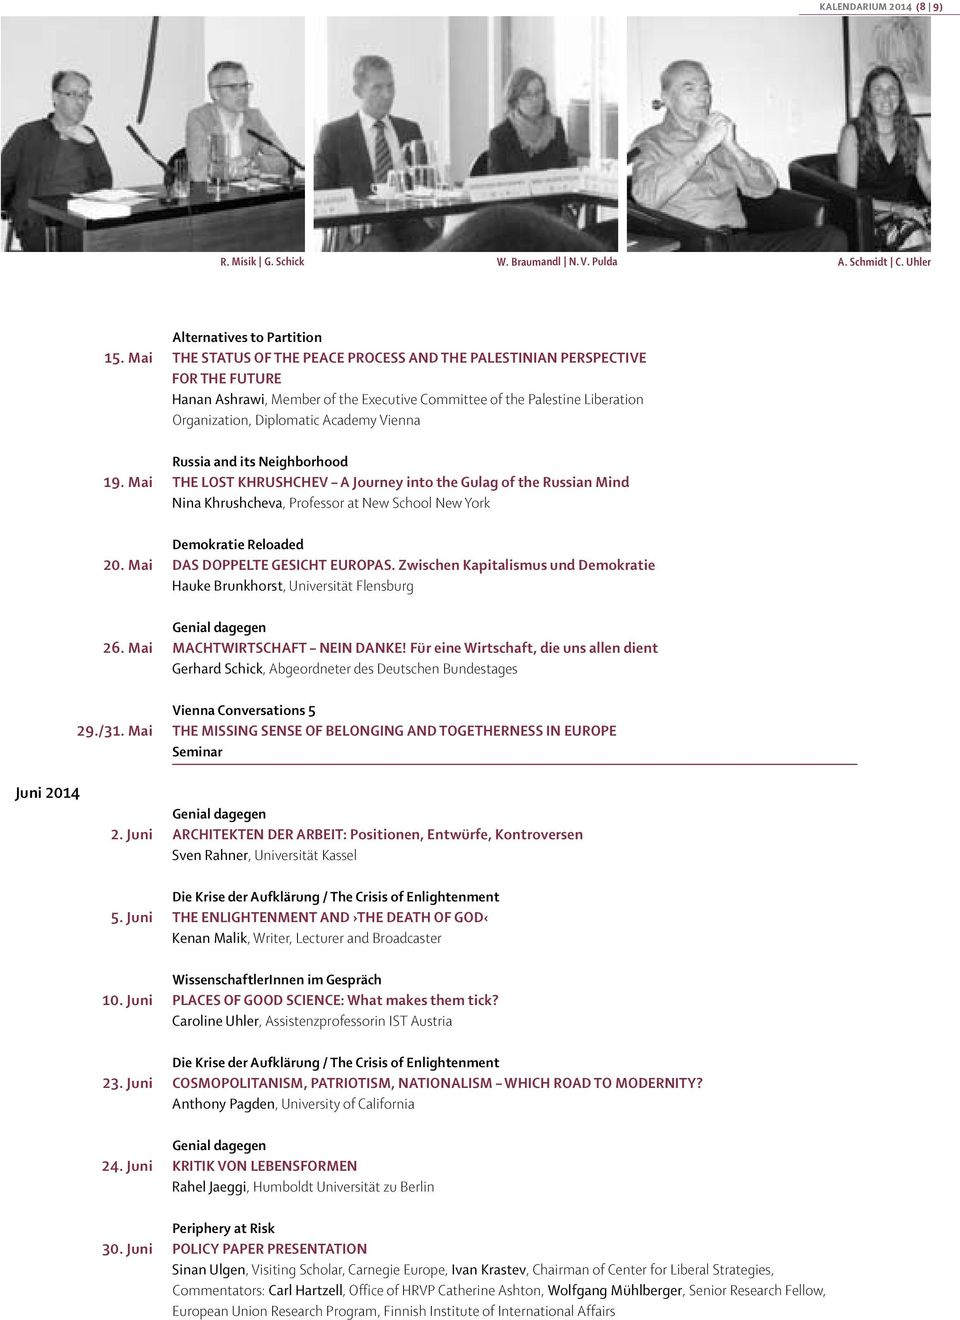 Diplomatic Academy Vienna 19. Mai Russia and its Neighborhood THE LOST KHRUSHCHEV A Journey into the Gulag of the Russian Mind Nina Khrushcheva, Professor at New School New York 20.